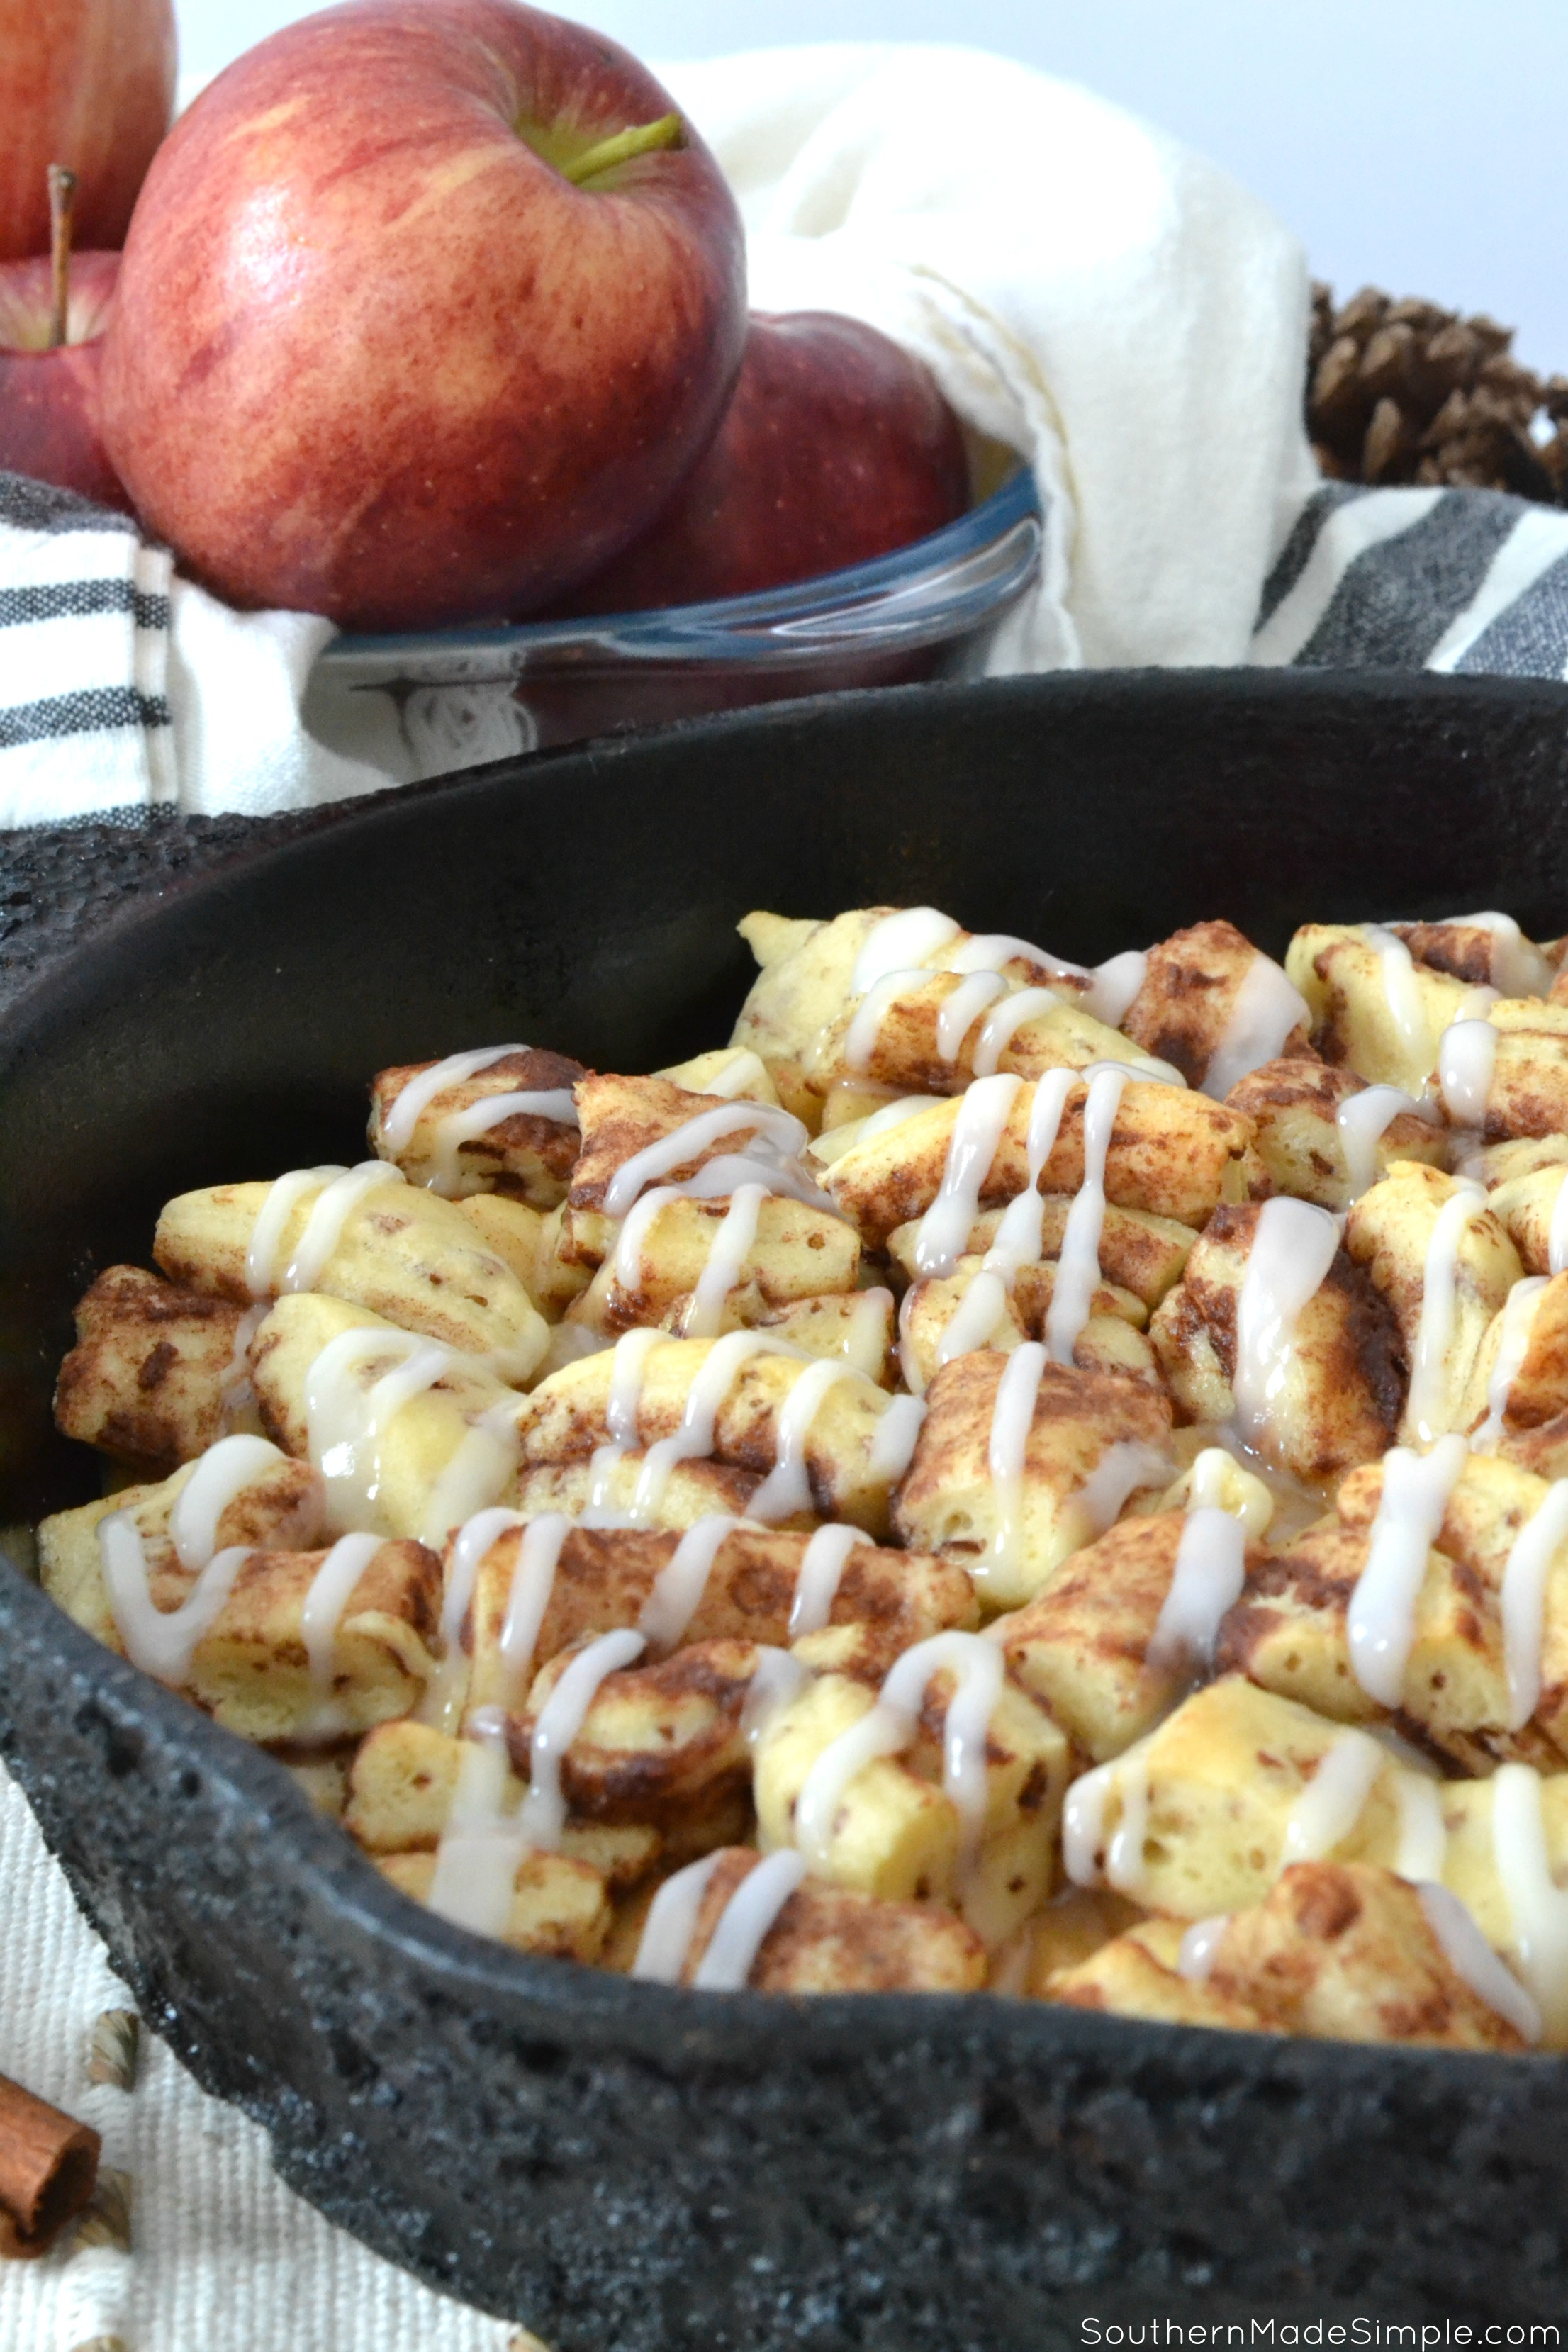 This Cinnamon Roll Apple Cobbler captures the flavors of fall perfectly! Add a scoop of ice cream and you're in for a real treat! #Apples #Cinnamonrolls #Cobbler